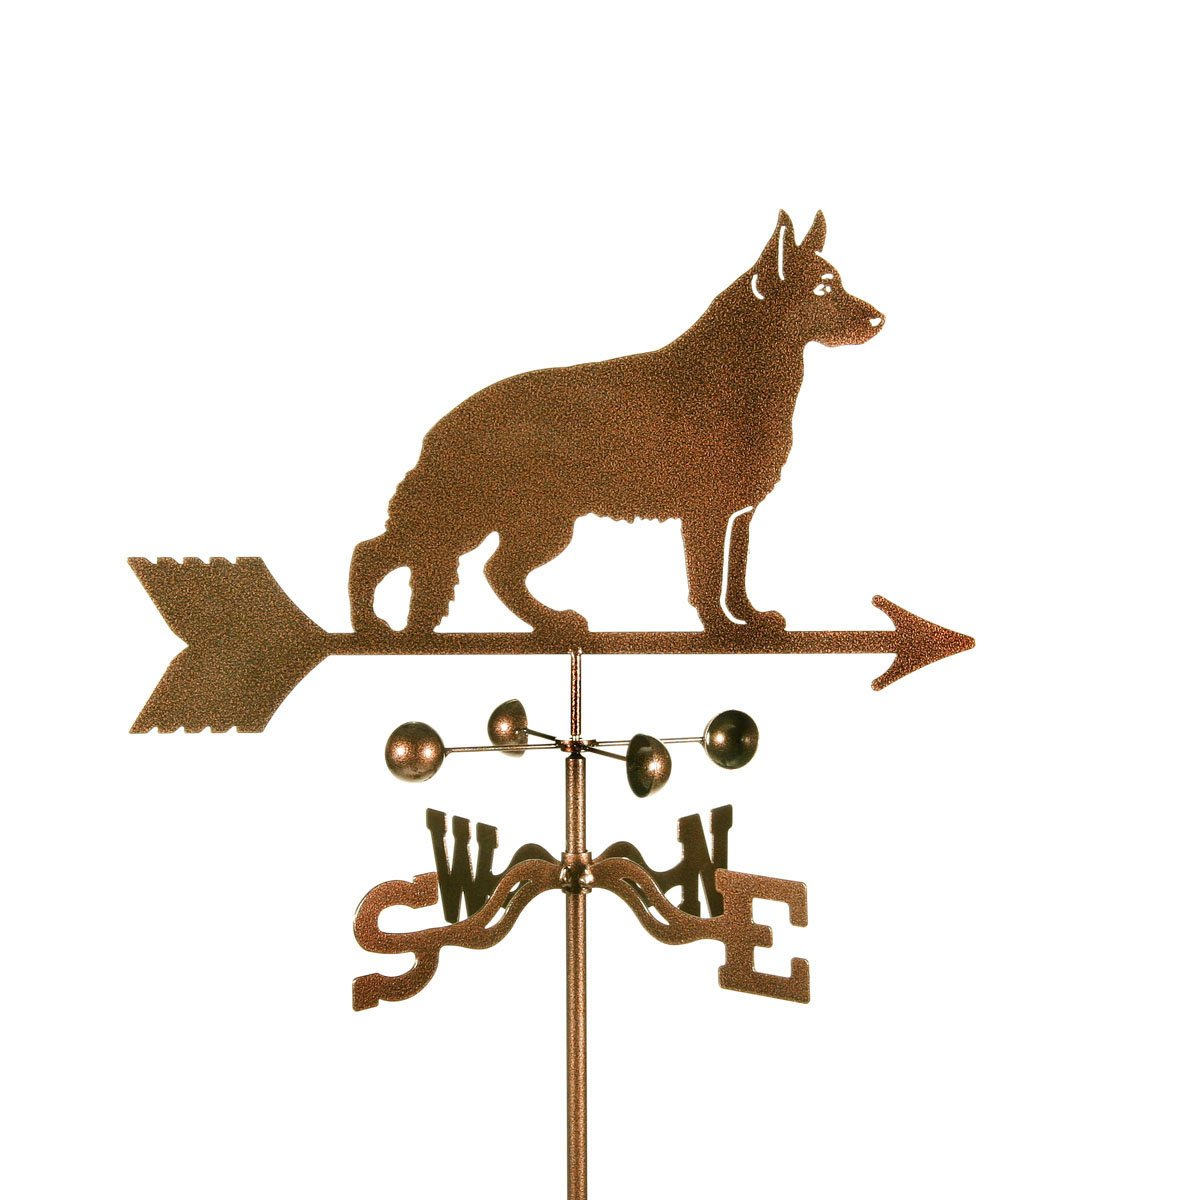 Dog - Geman Shepherd Roof Mount Weathervane